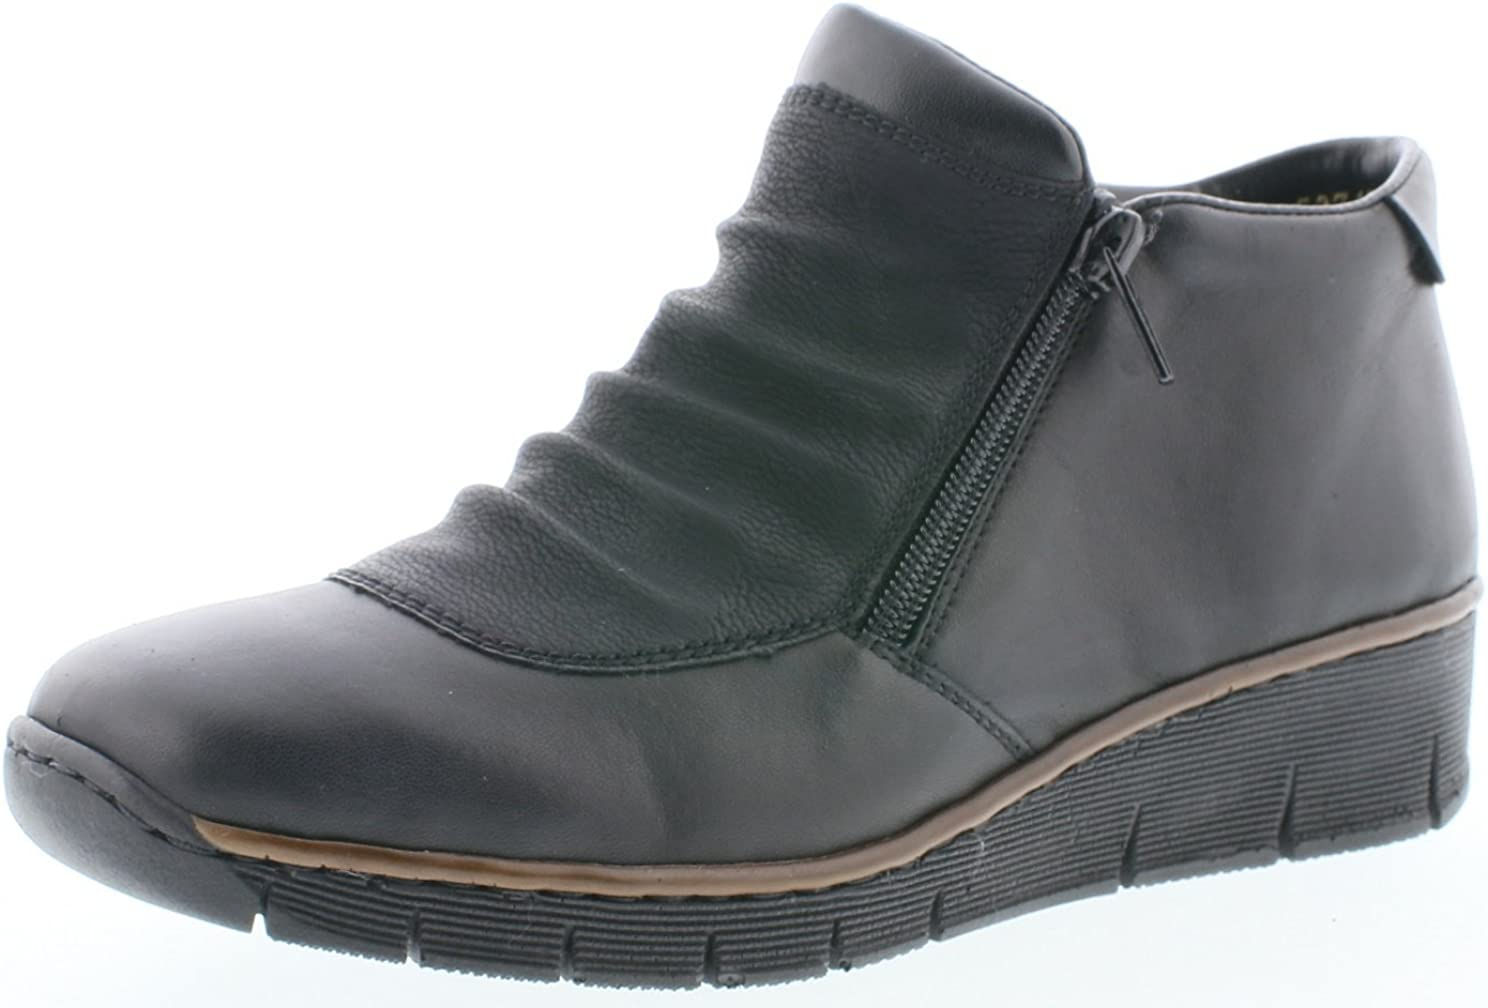 Rieker 53742 00 BOCCITWIN Black Womens Ankle Boots